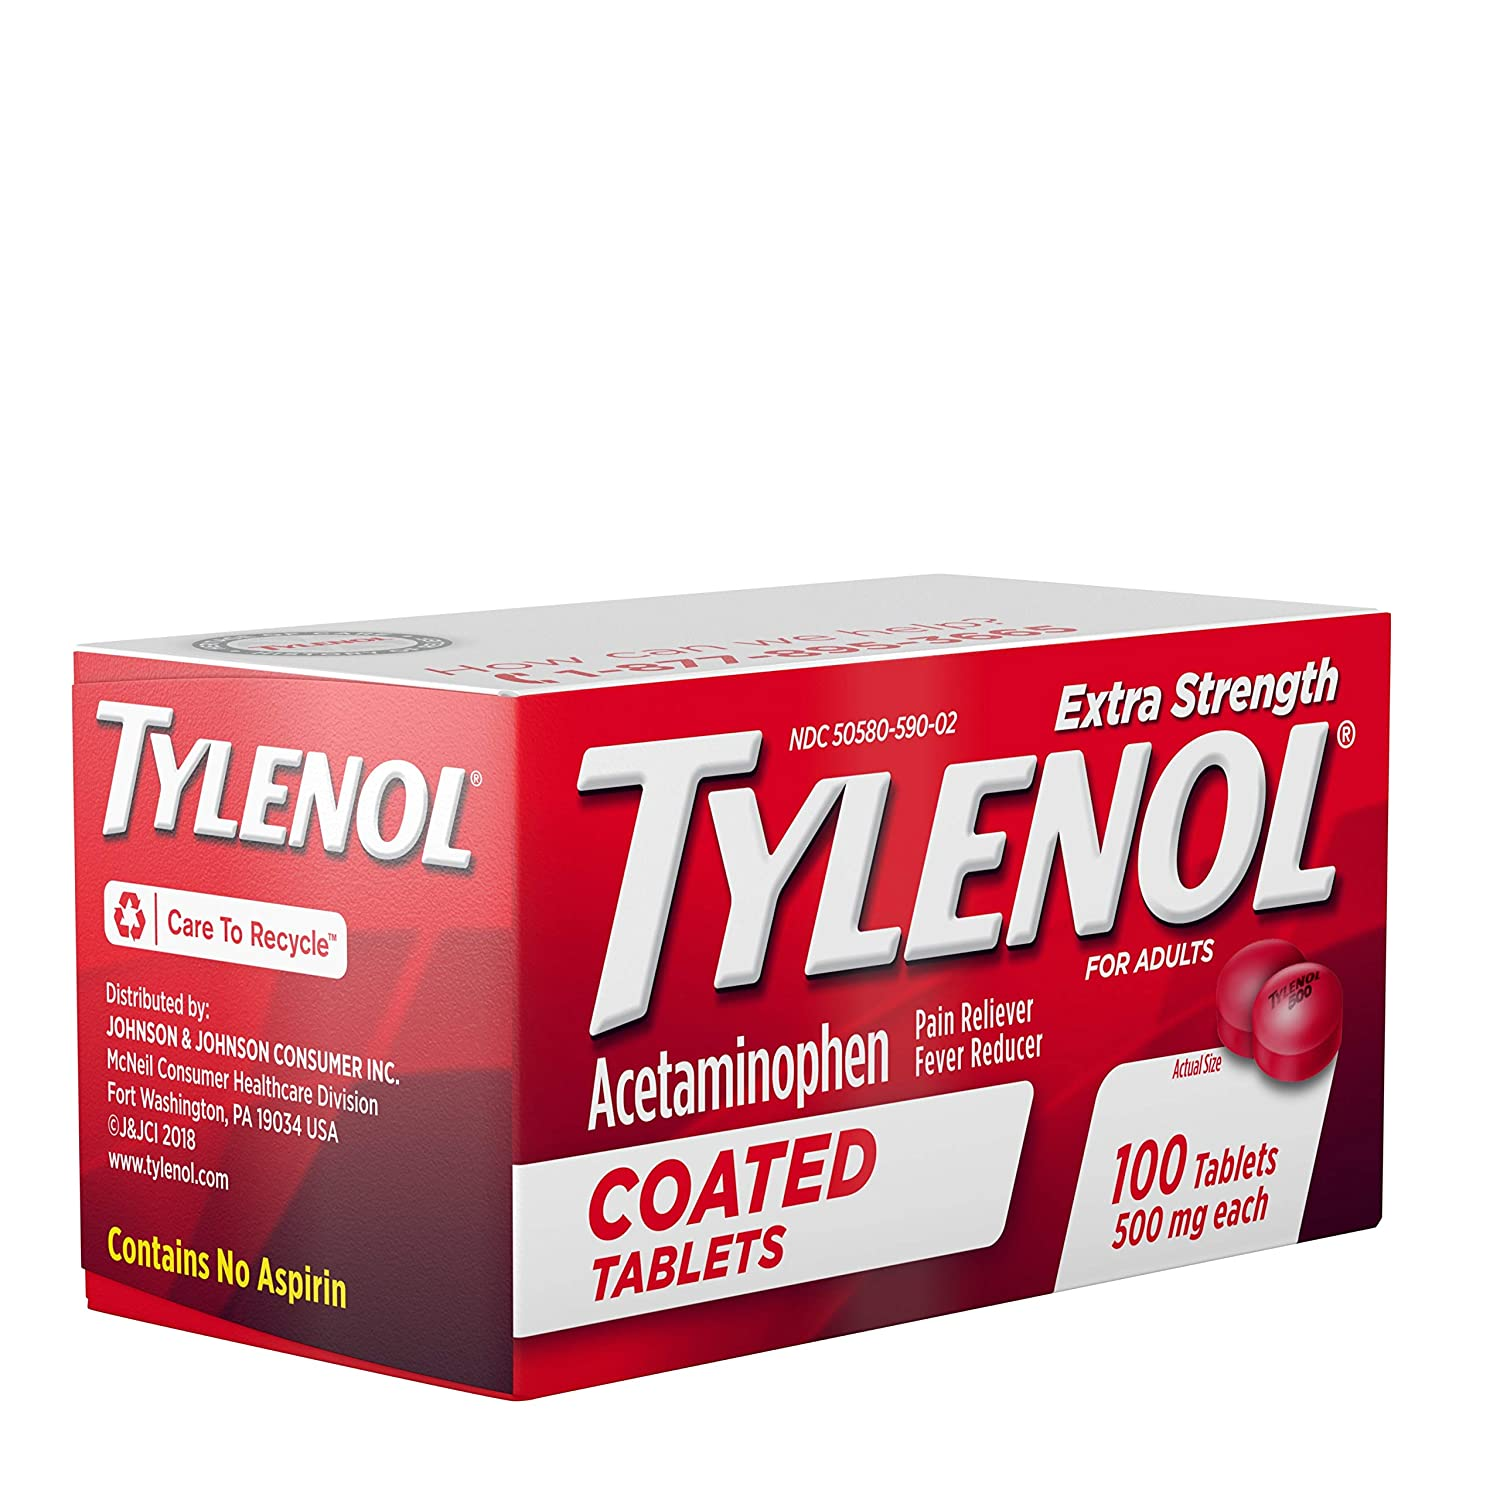 Amazon.com: Tylenol Extra Strength Coated Tablets, Acetaminophen Adult Pain Relief & Fever Reducer, 100 ct: Health & Personal Care